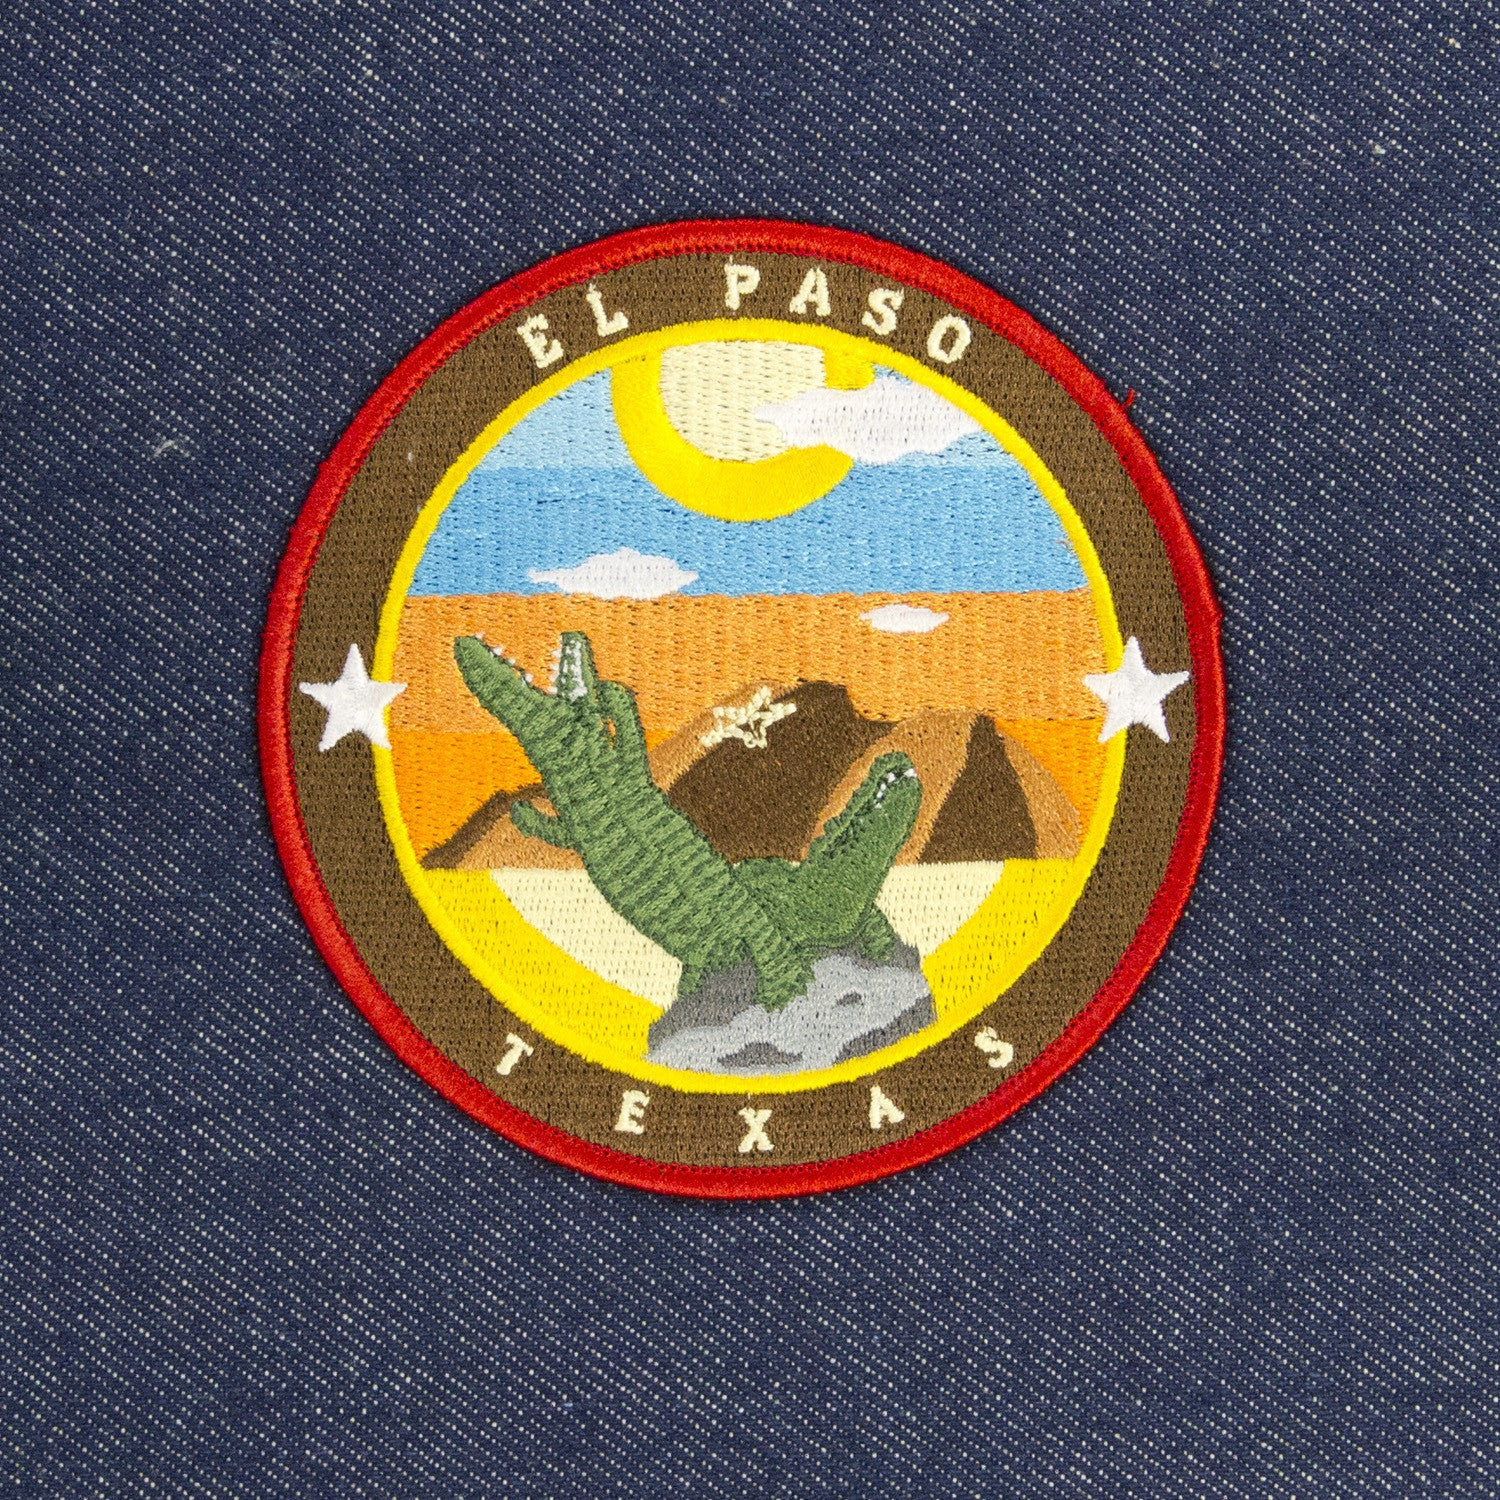 Patch- Lagartos